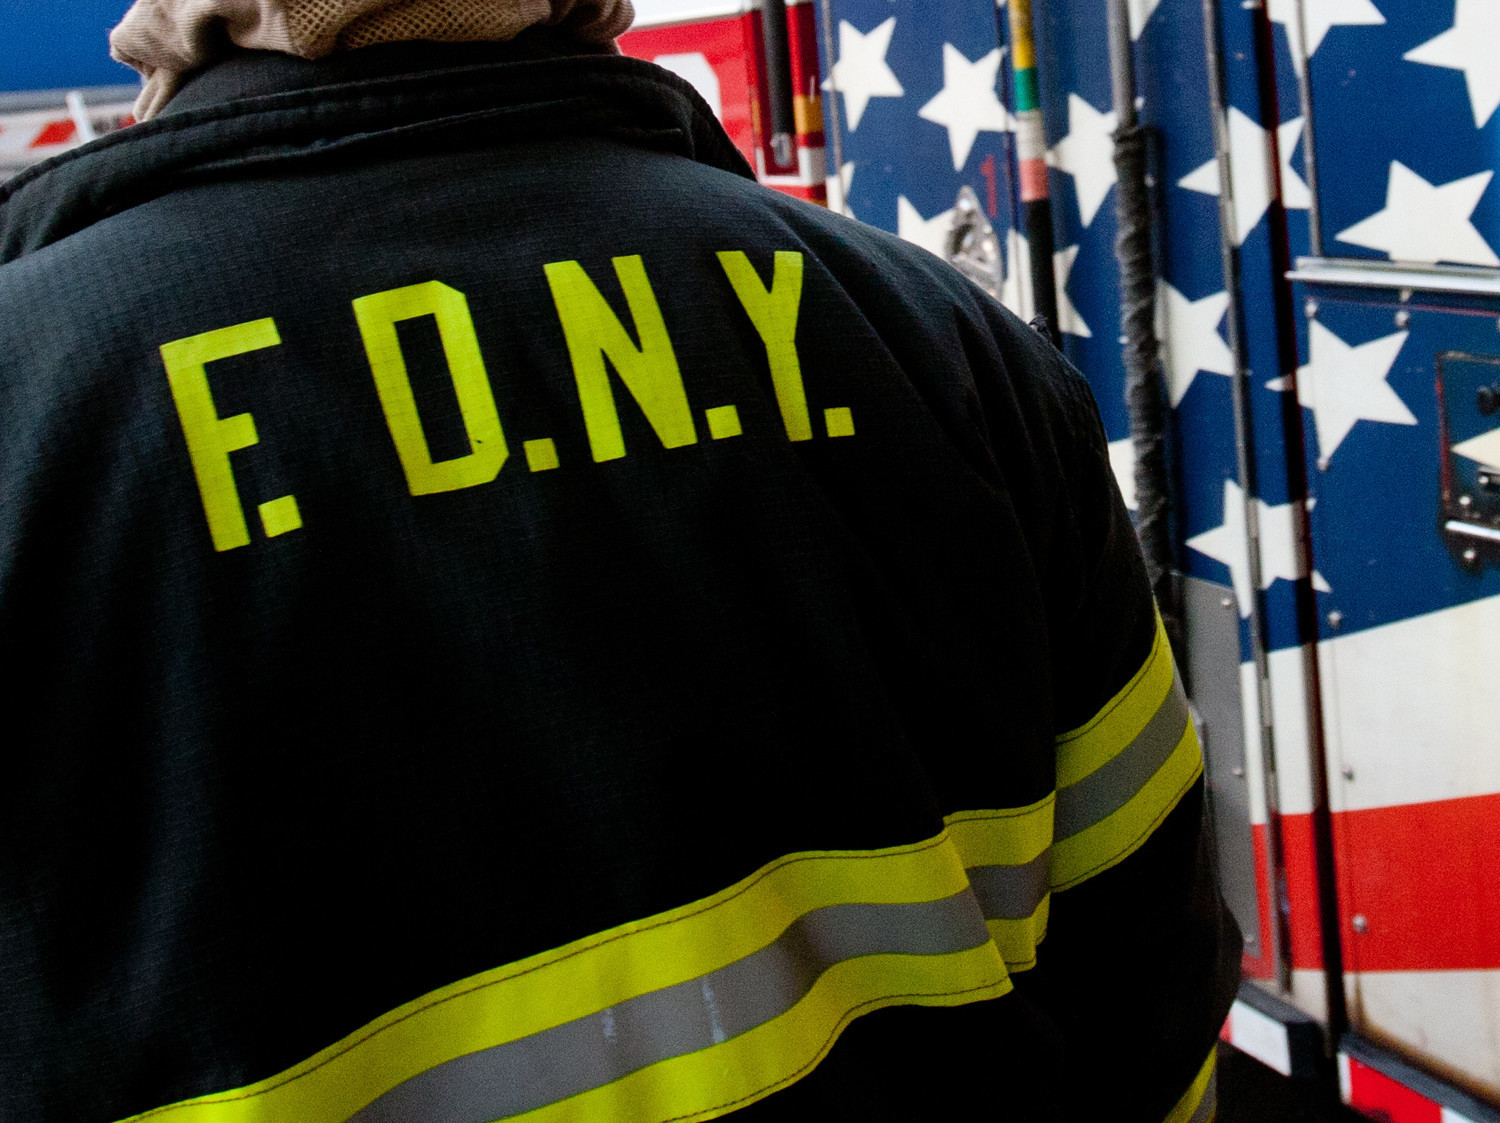 Off-duty FDNY firefighter arrested for choking girlfriend in Manhattan